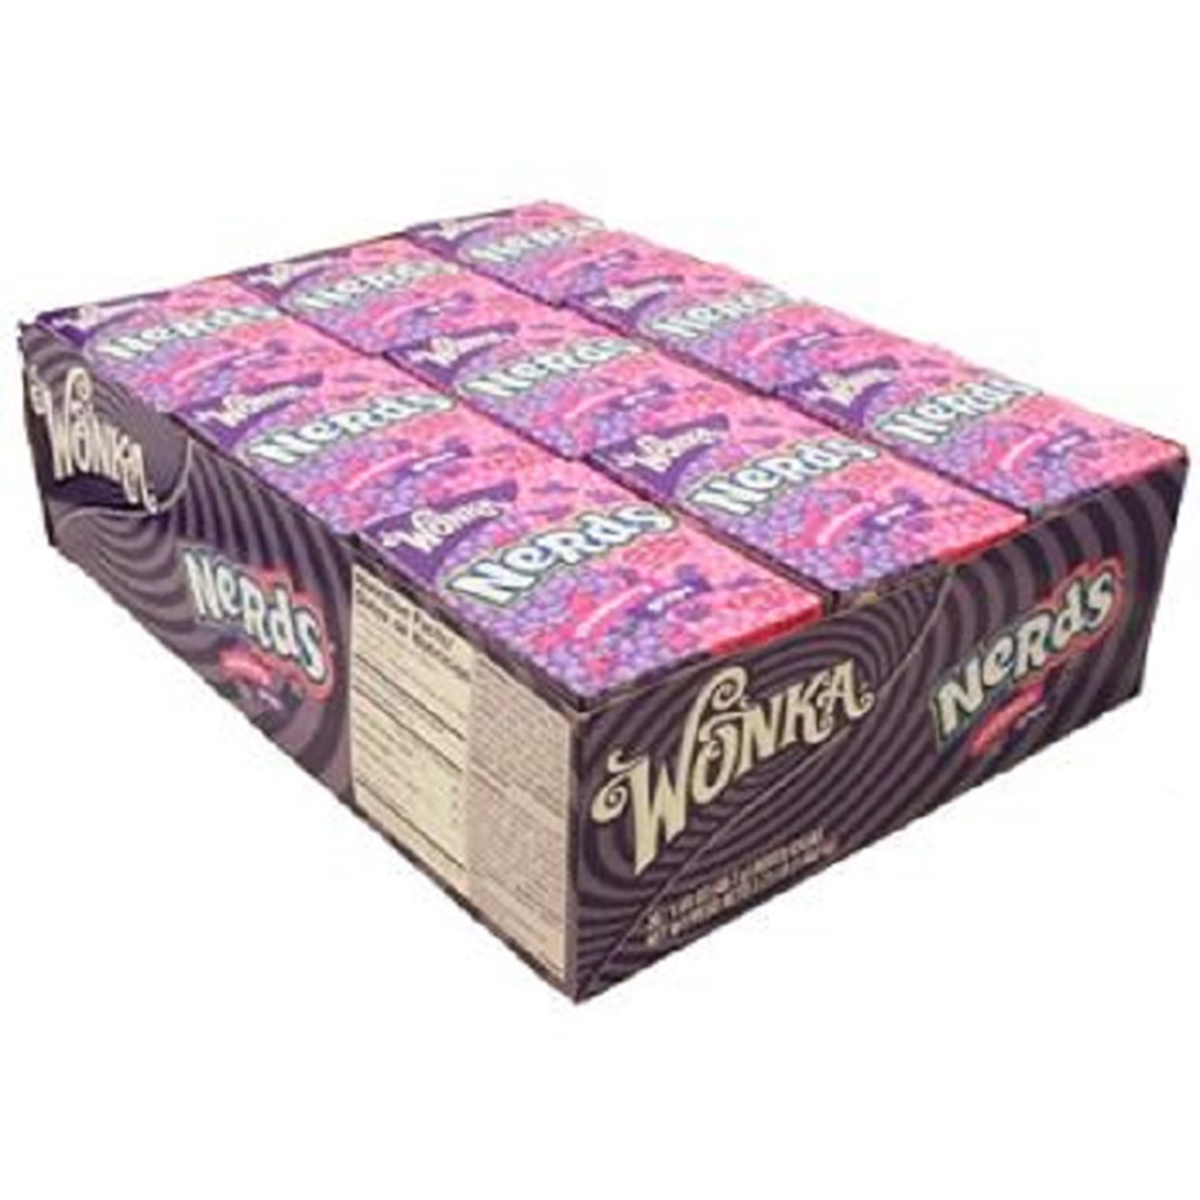 Nerds Grape & Strawberry Candy , 1.65-Ounce (Pack of 36)